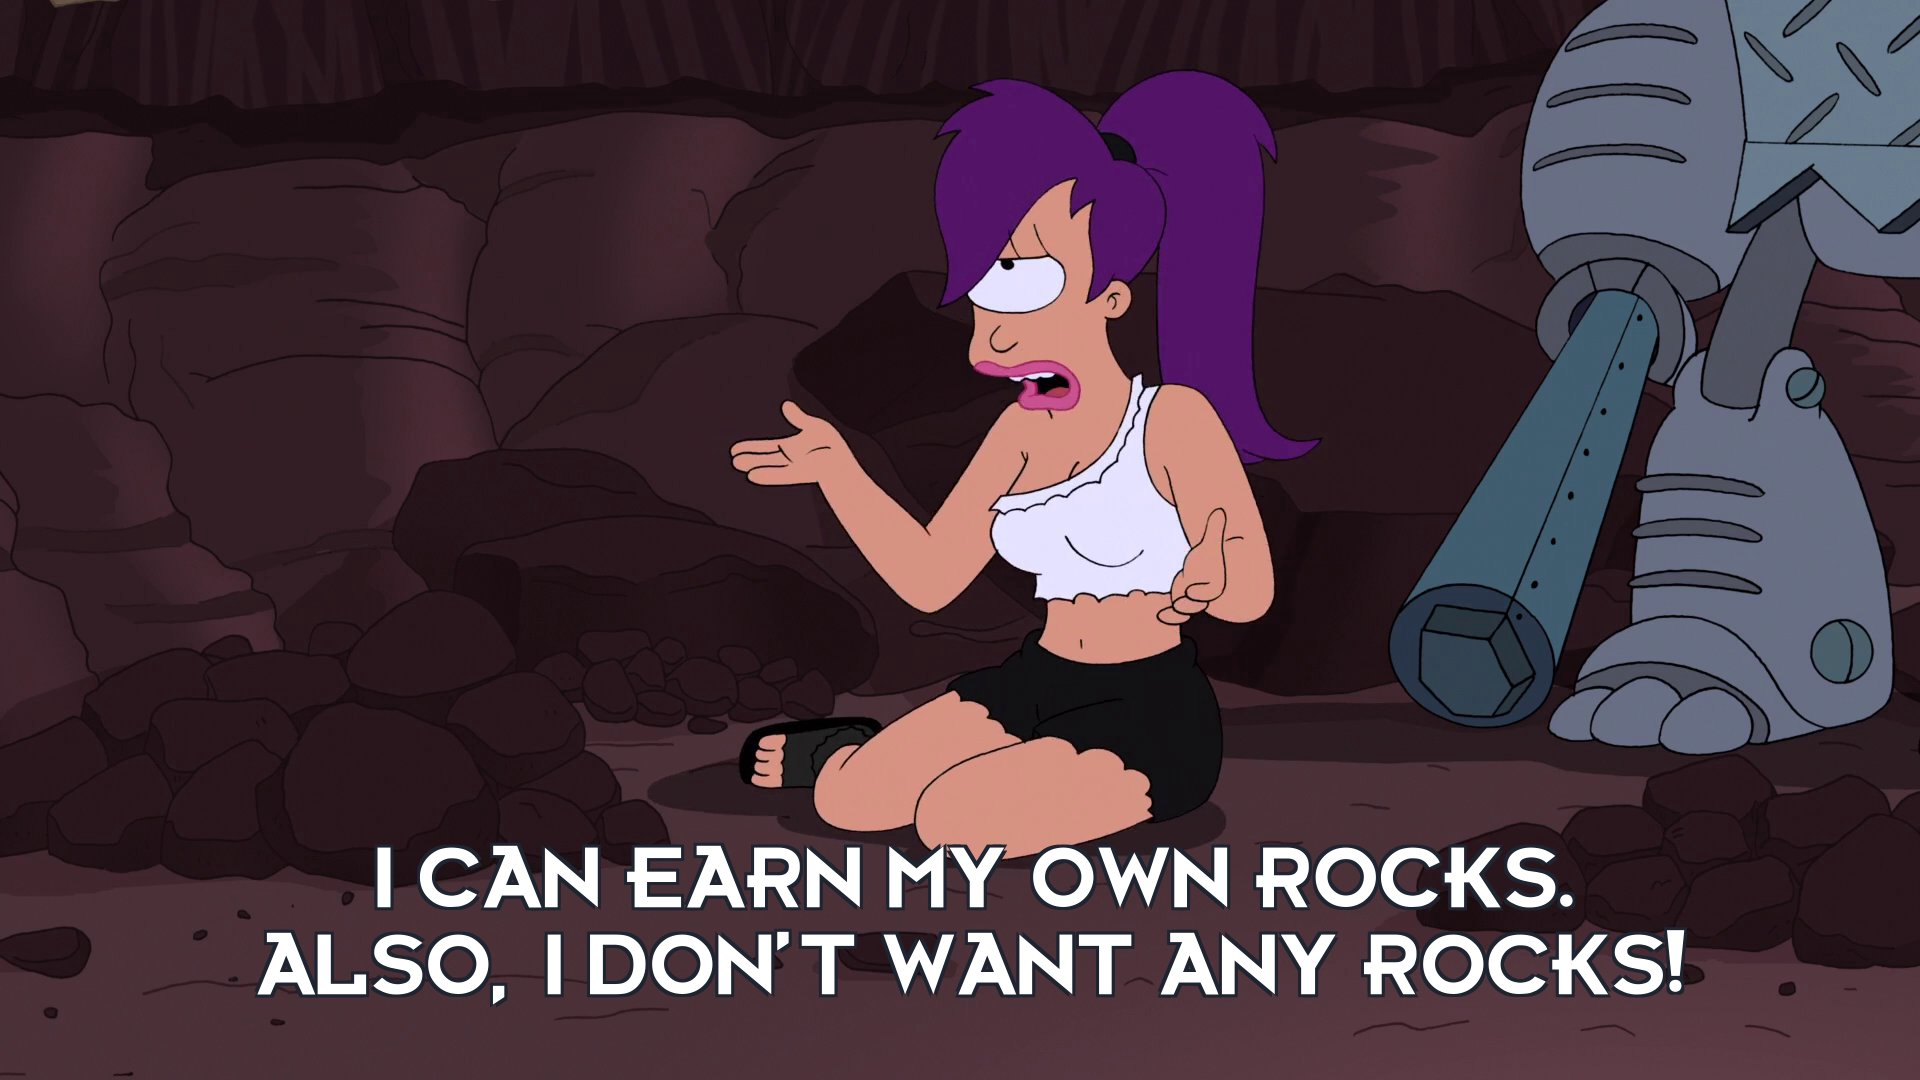 Turanga Leela: I can earn my own rocks. Also, I don't want any rocks!